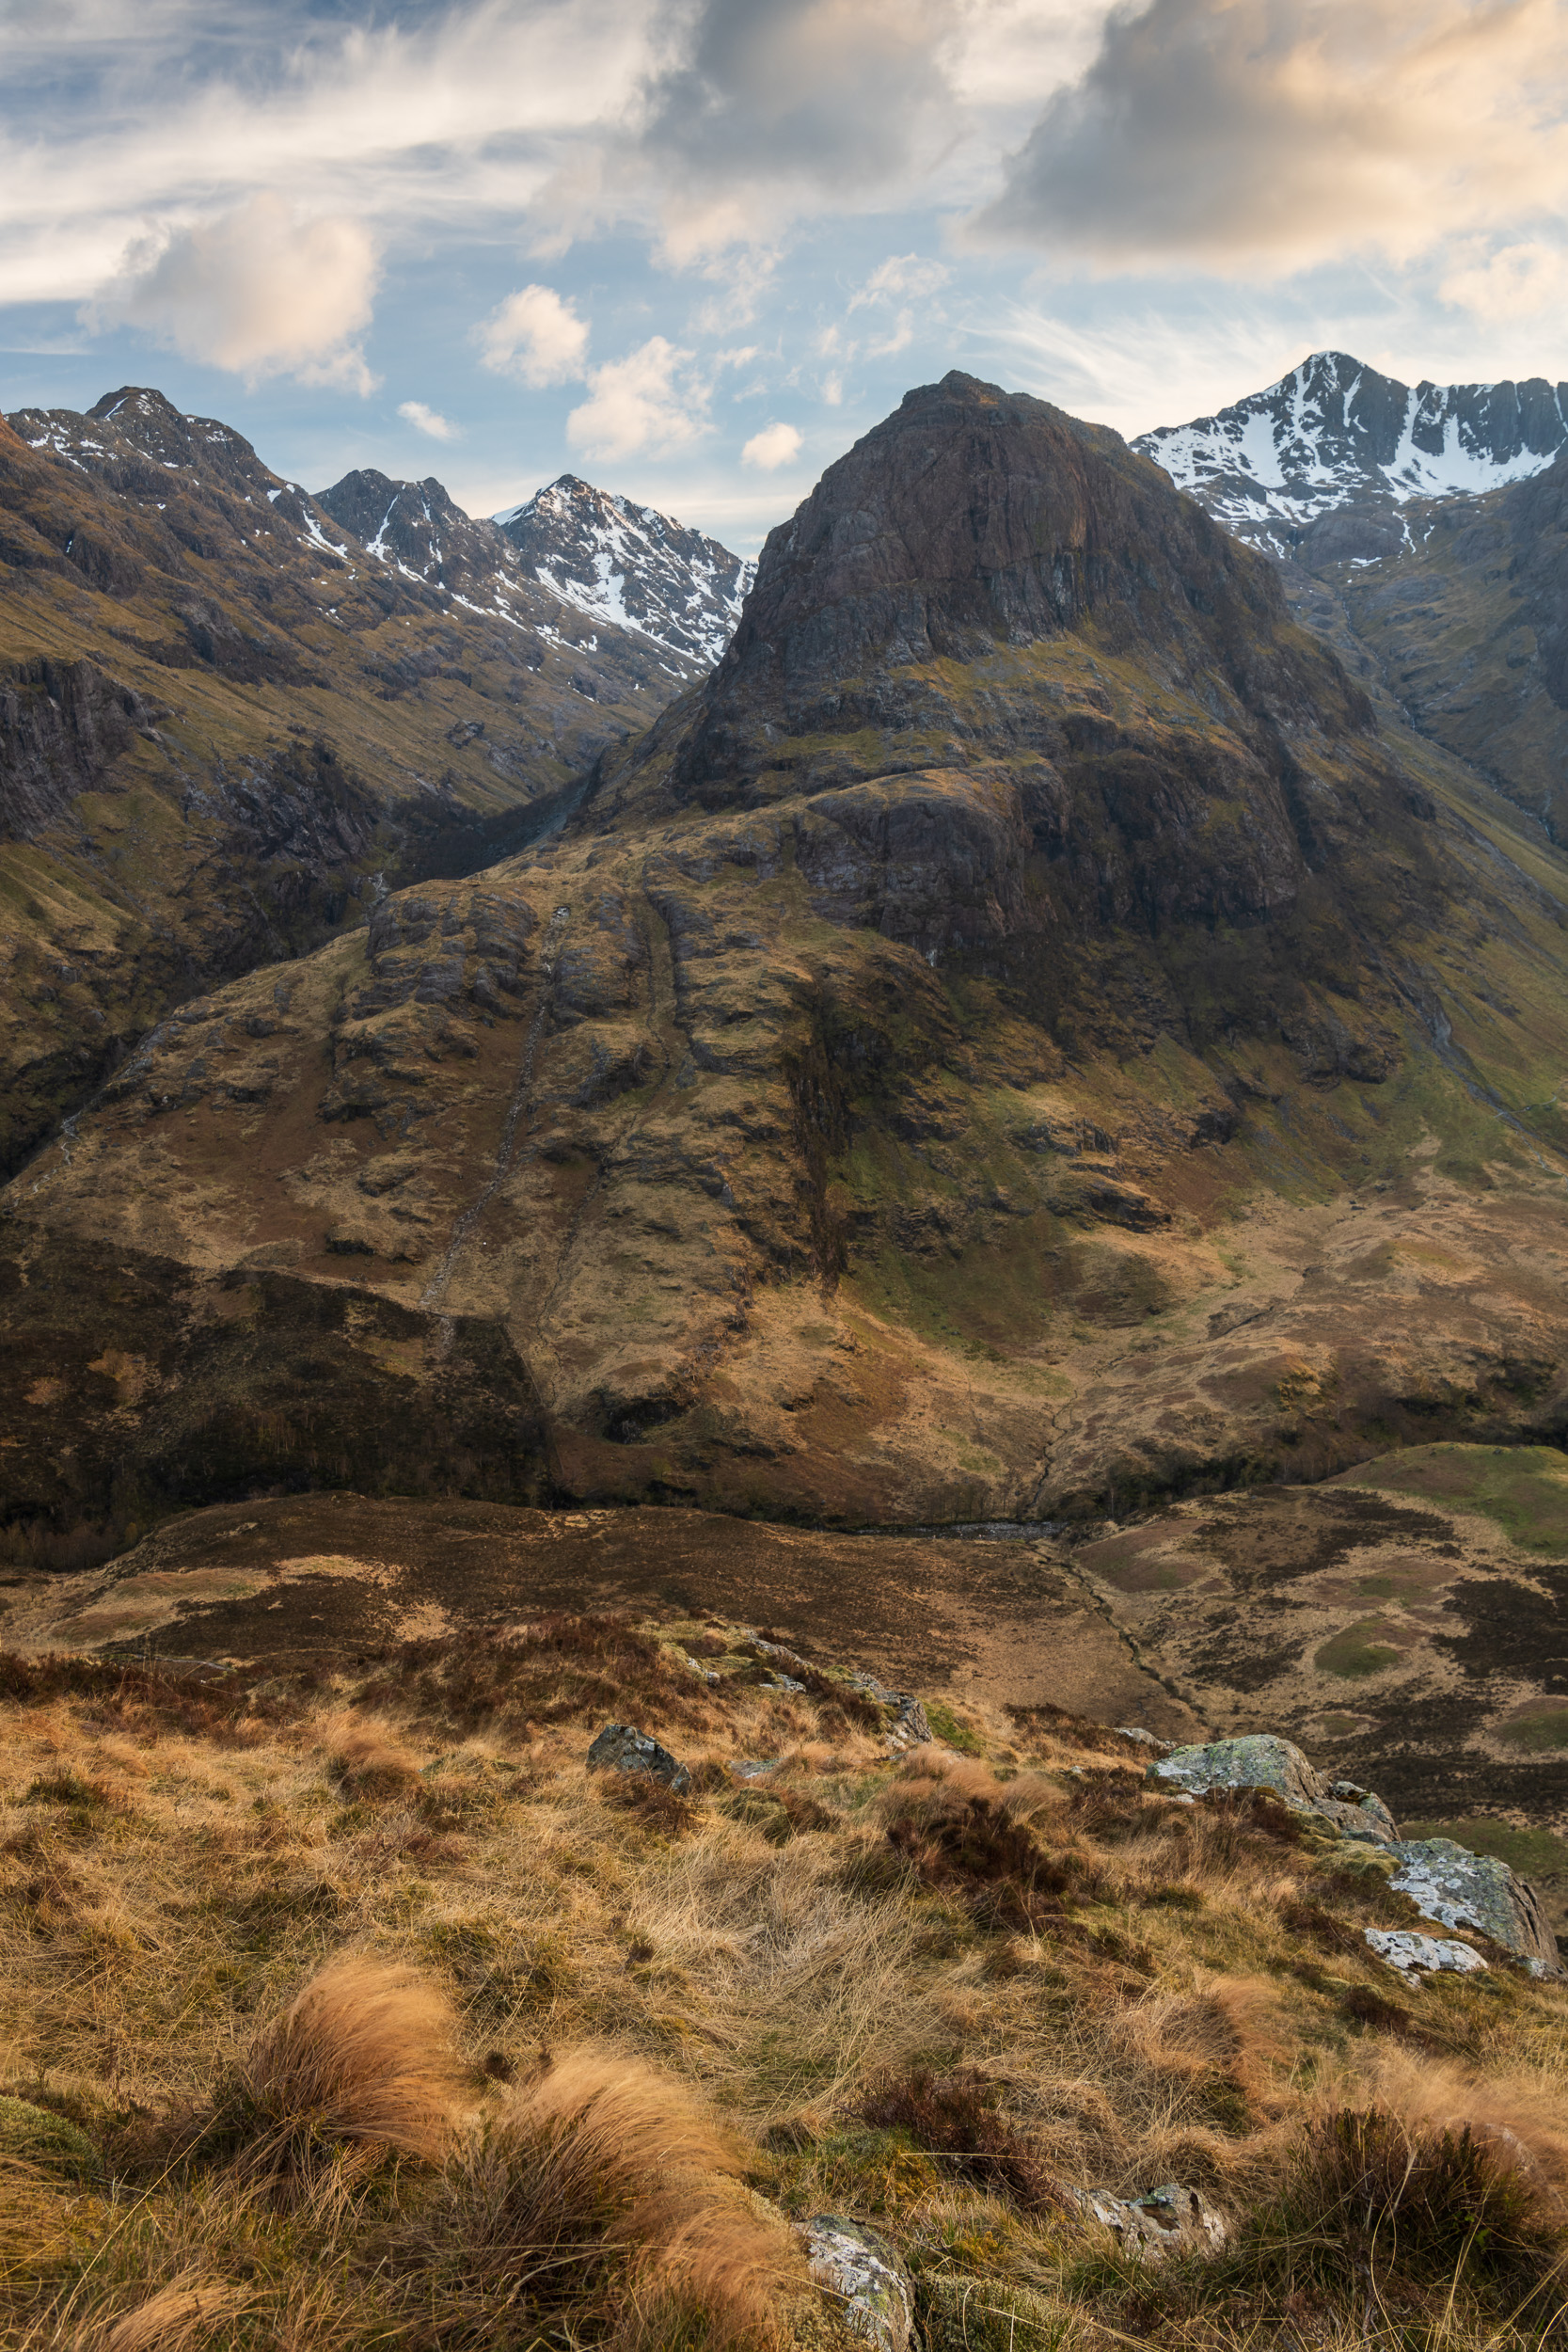 Gearr Aonach, Glencoe, Scotland  - Nikon D850, Nikkor 24-70 mm f/2.8 VR at 31 mm, f/13. 1/4th sec at ISO 64.